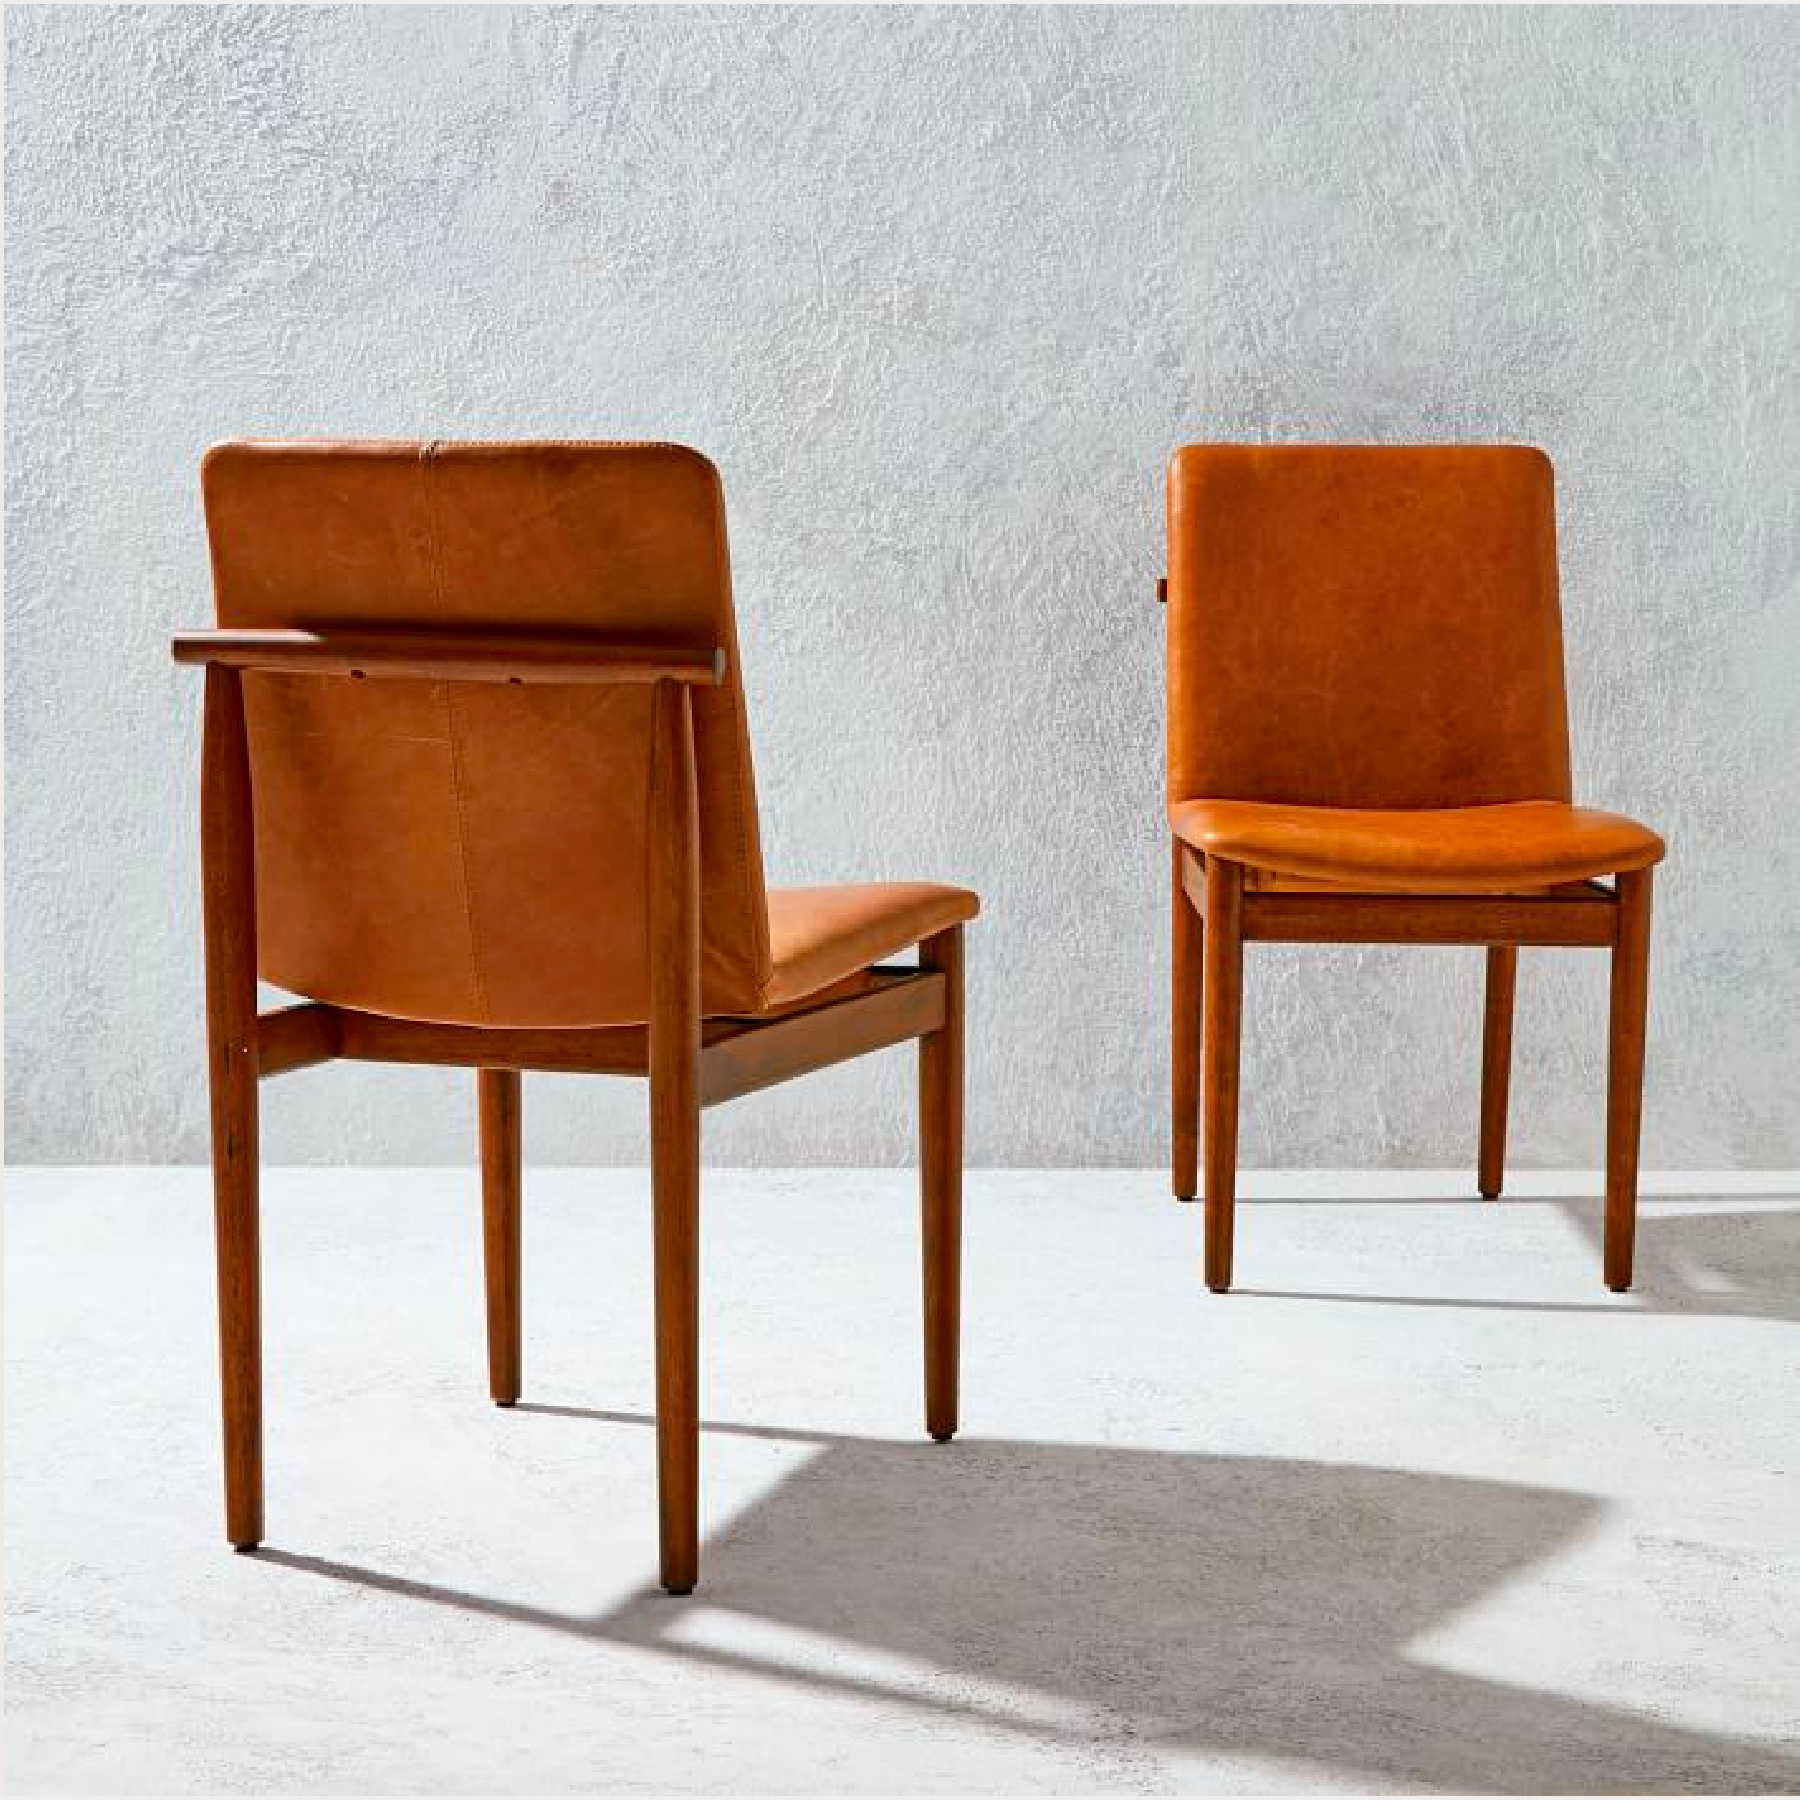 Sensational Add To Cart Dining Chairs All Sorts Of Machost Co Dining Chair Design Ideas Machostcouk